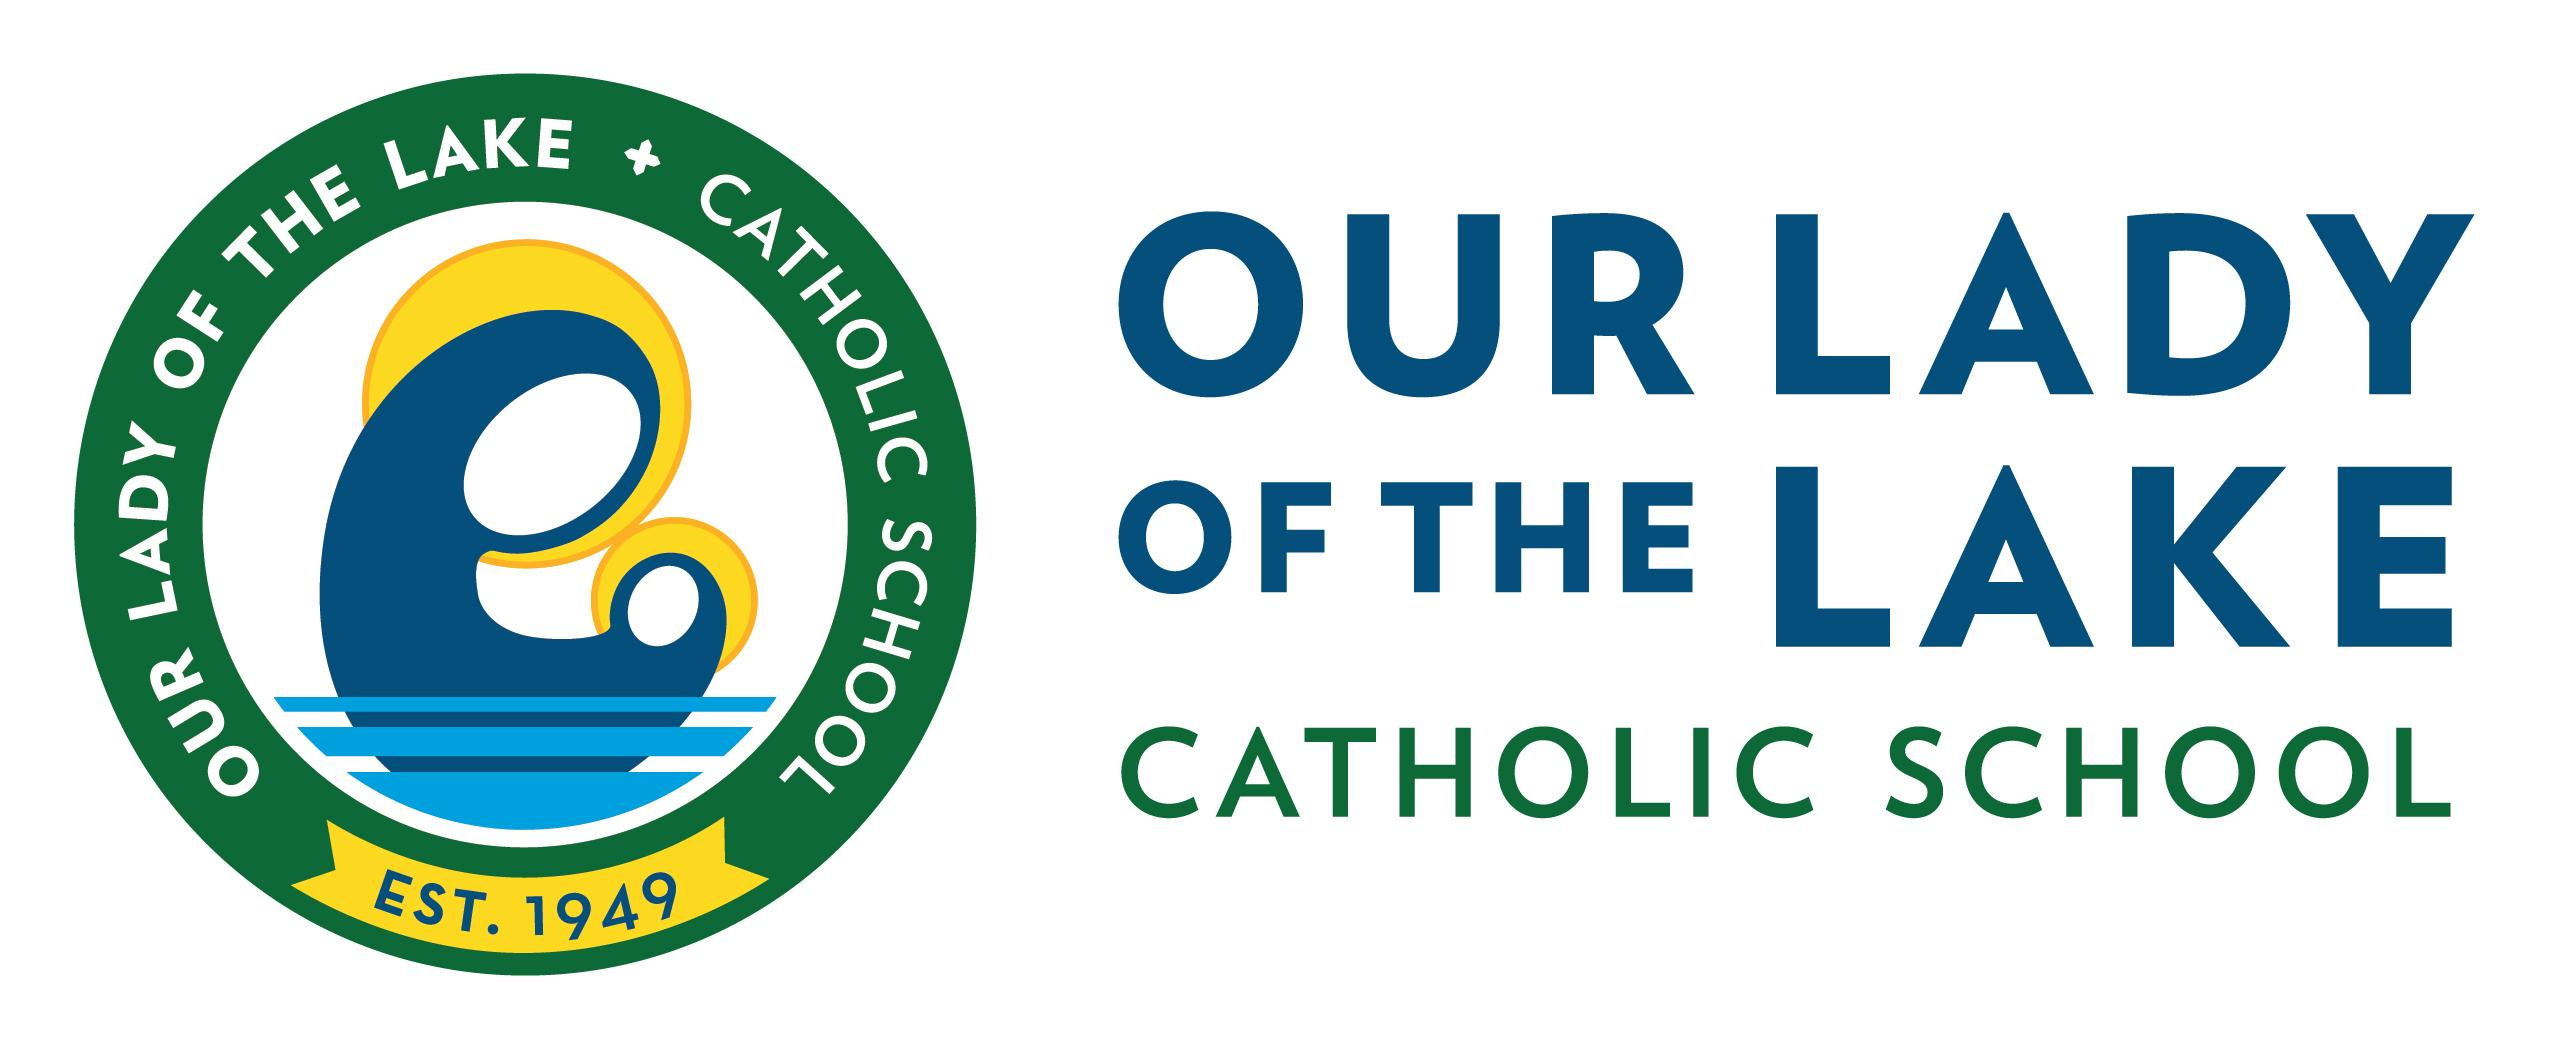 Our Lady of the Lake Catholic School